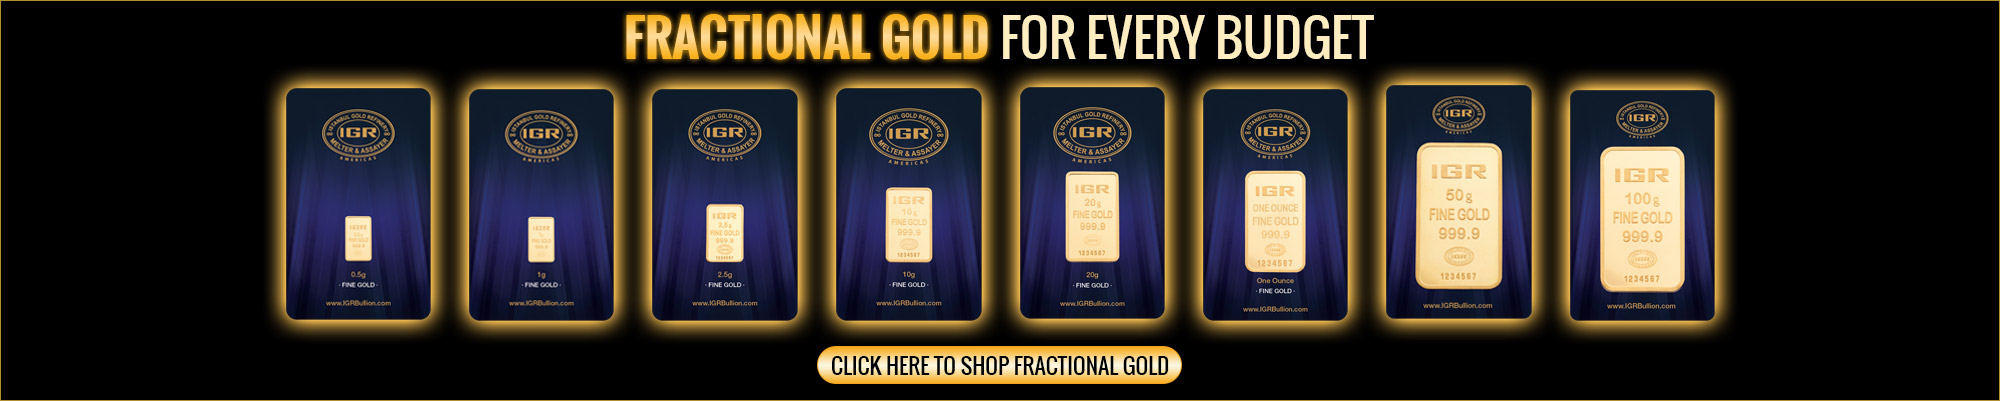 Fractional Gold for Every Budget